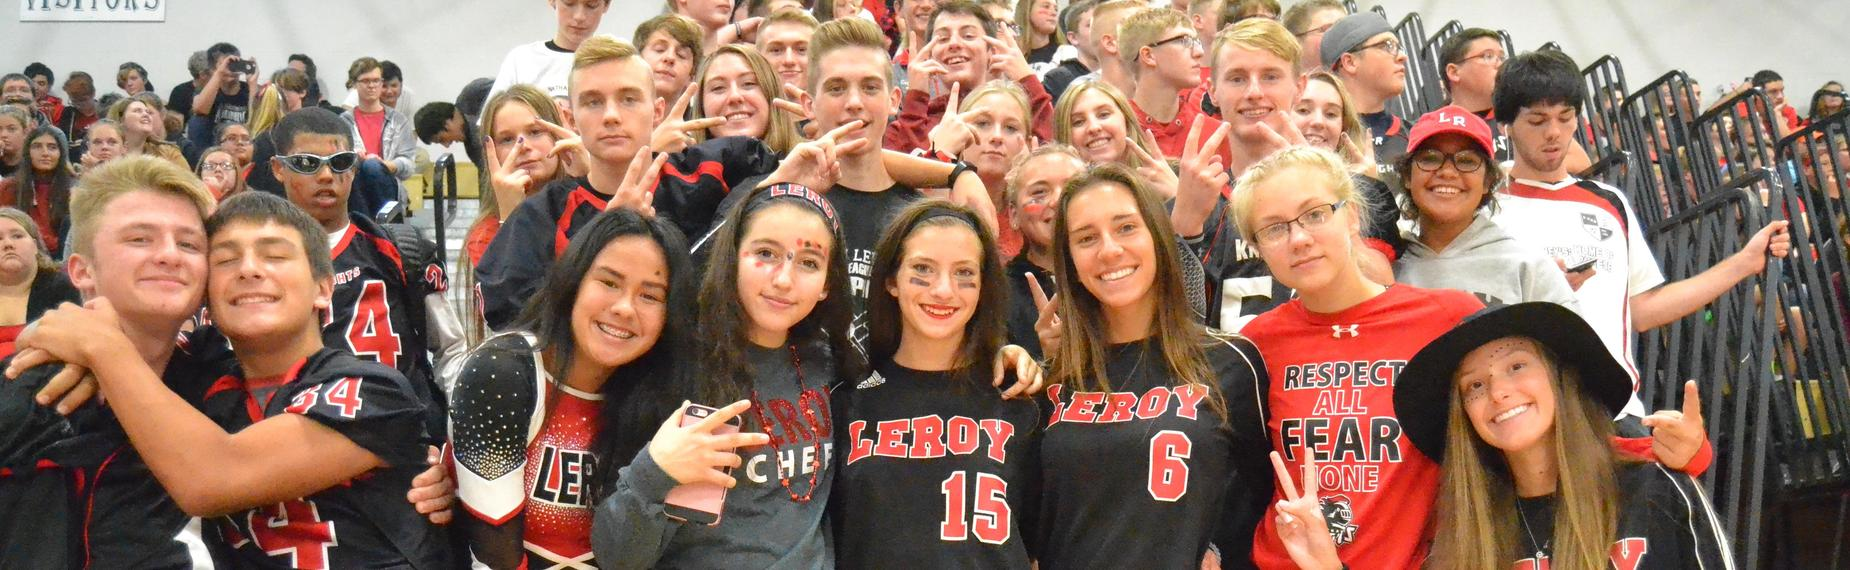 LCSD students at Pep Assembly